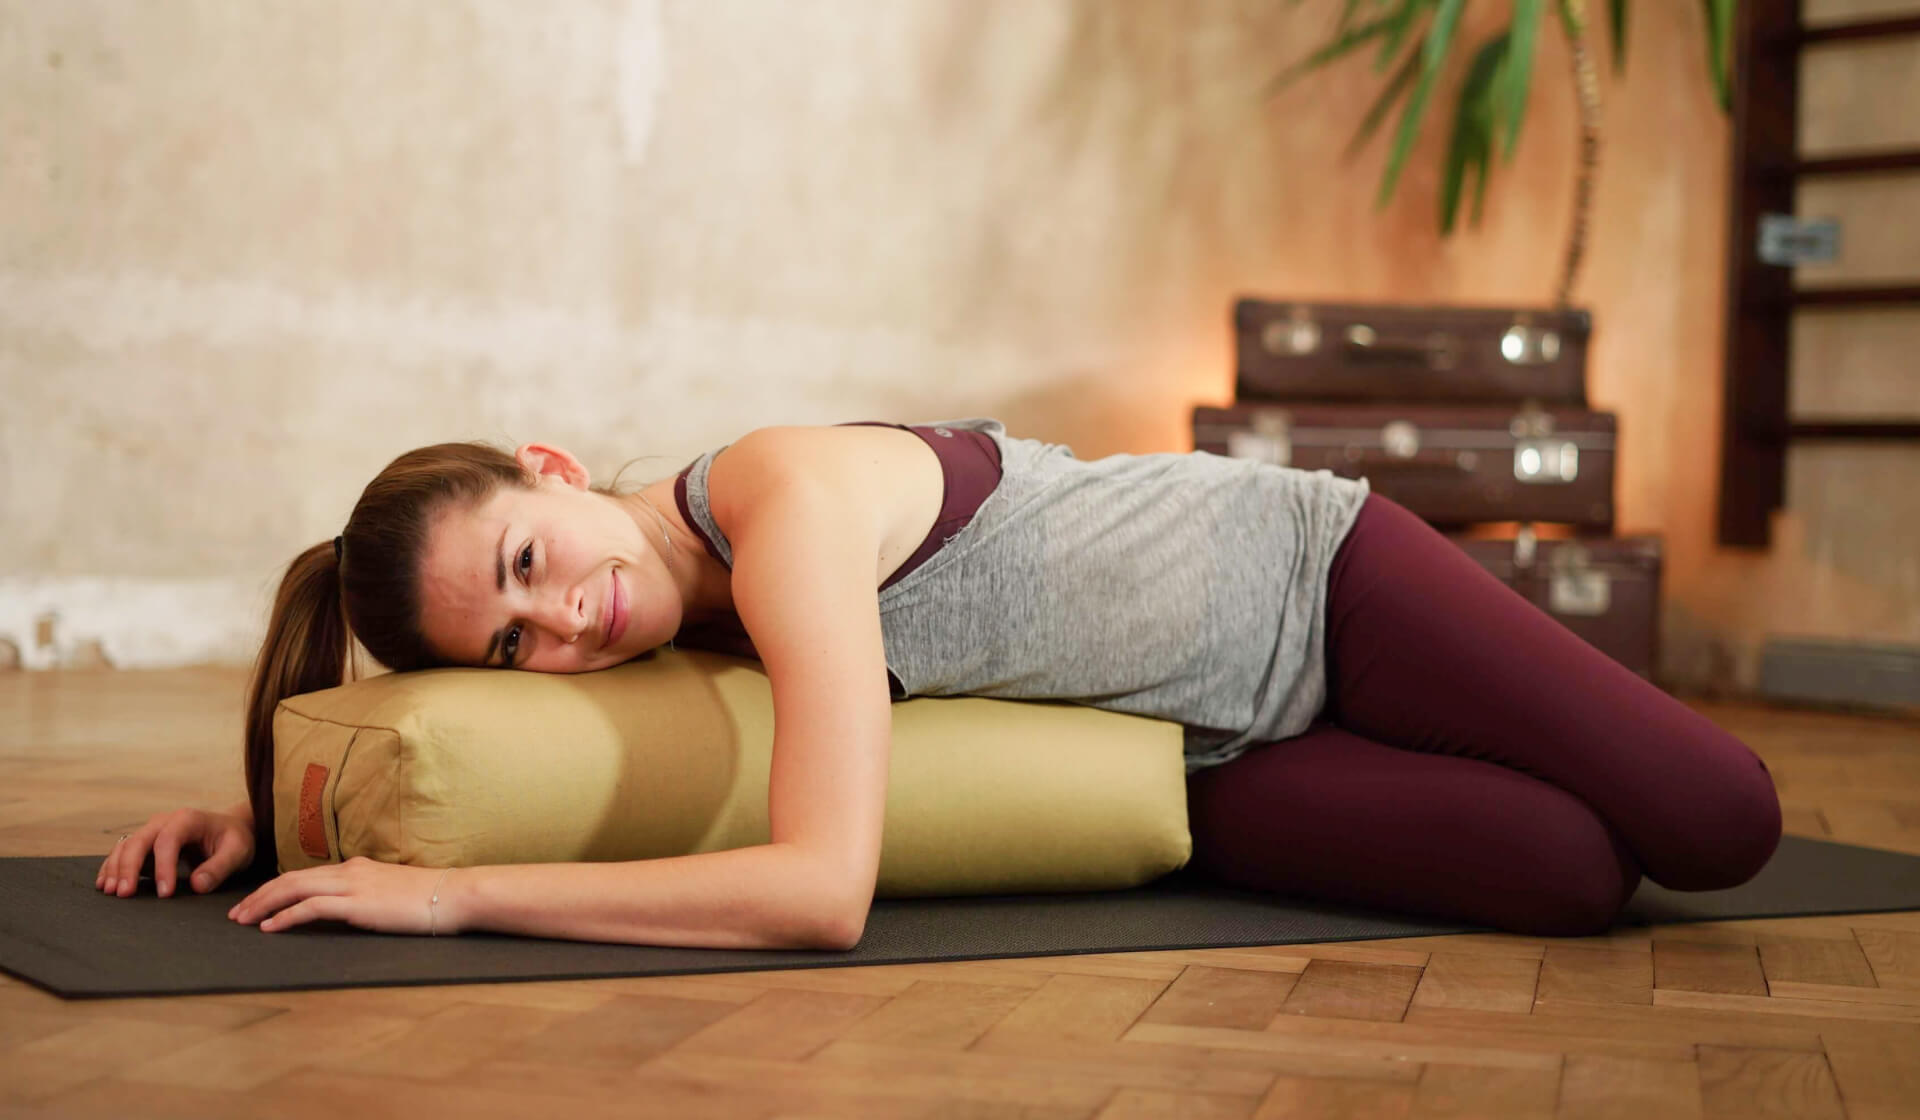 Yoga teacher practicing a relaxing restorative yoga pose - side lying over a yoga bolster and smiling